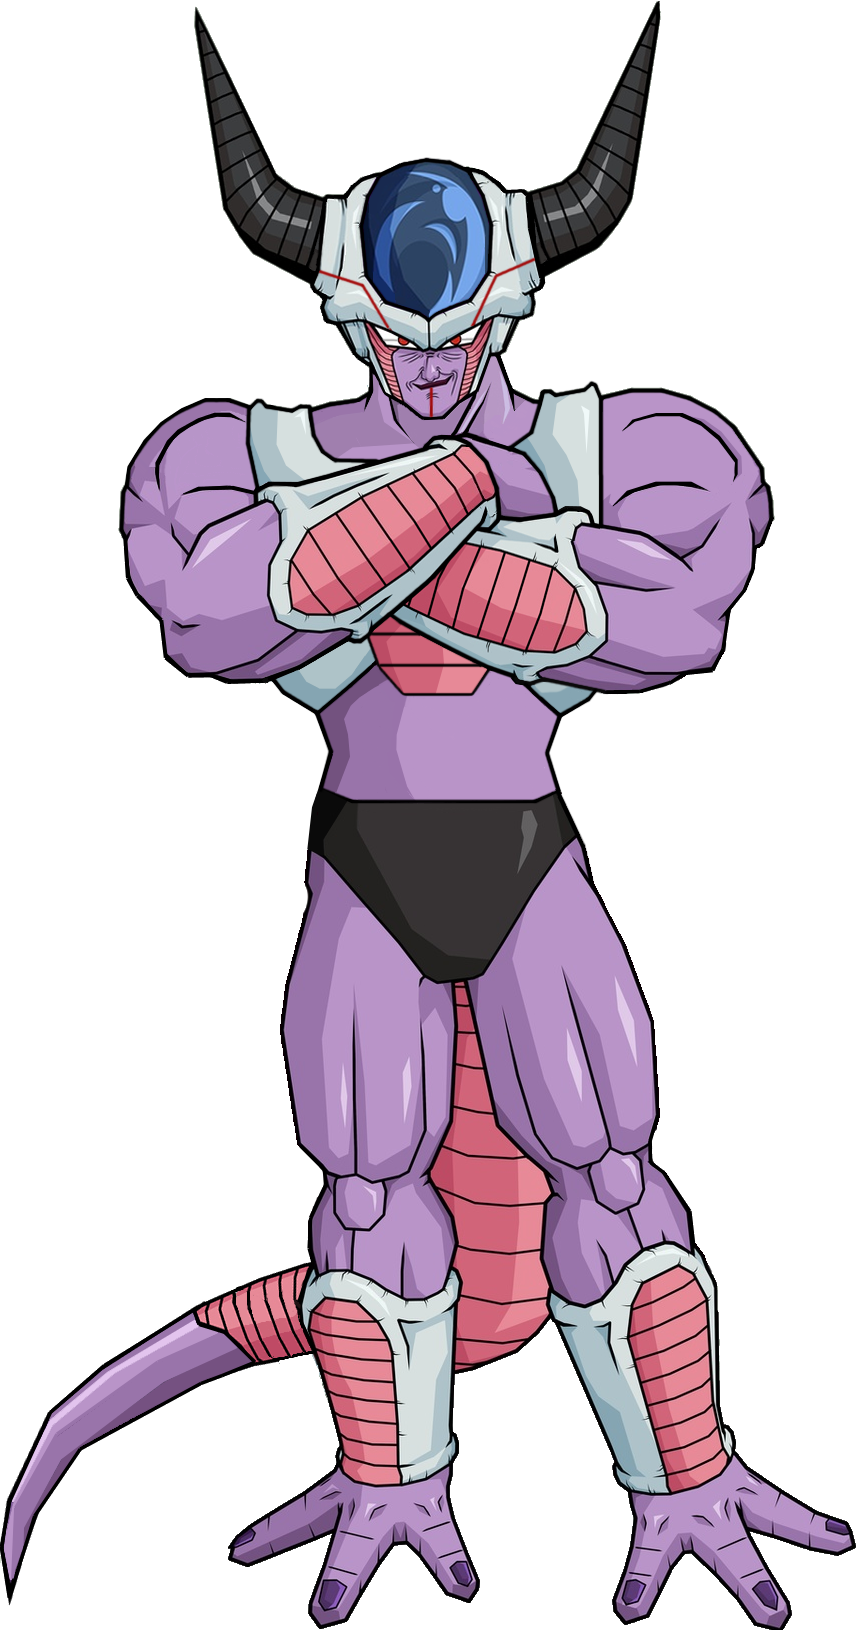 Baby King Cold 1st form by legoFrieza on DeviantArt